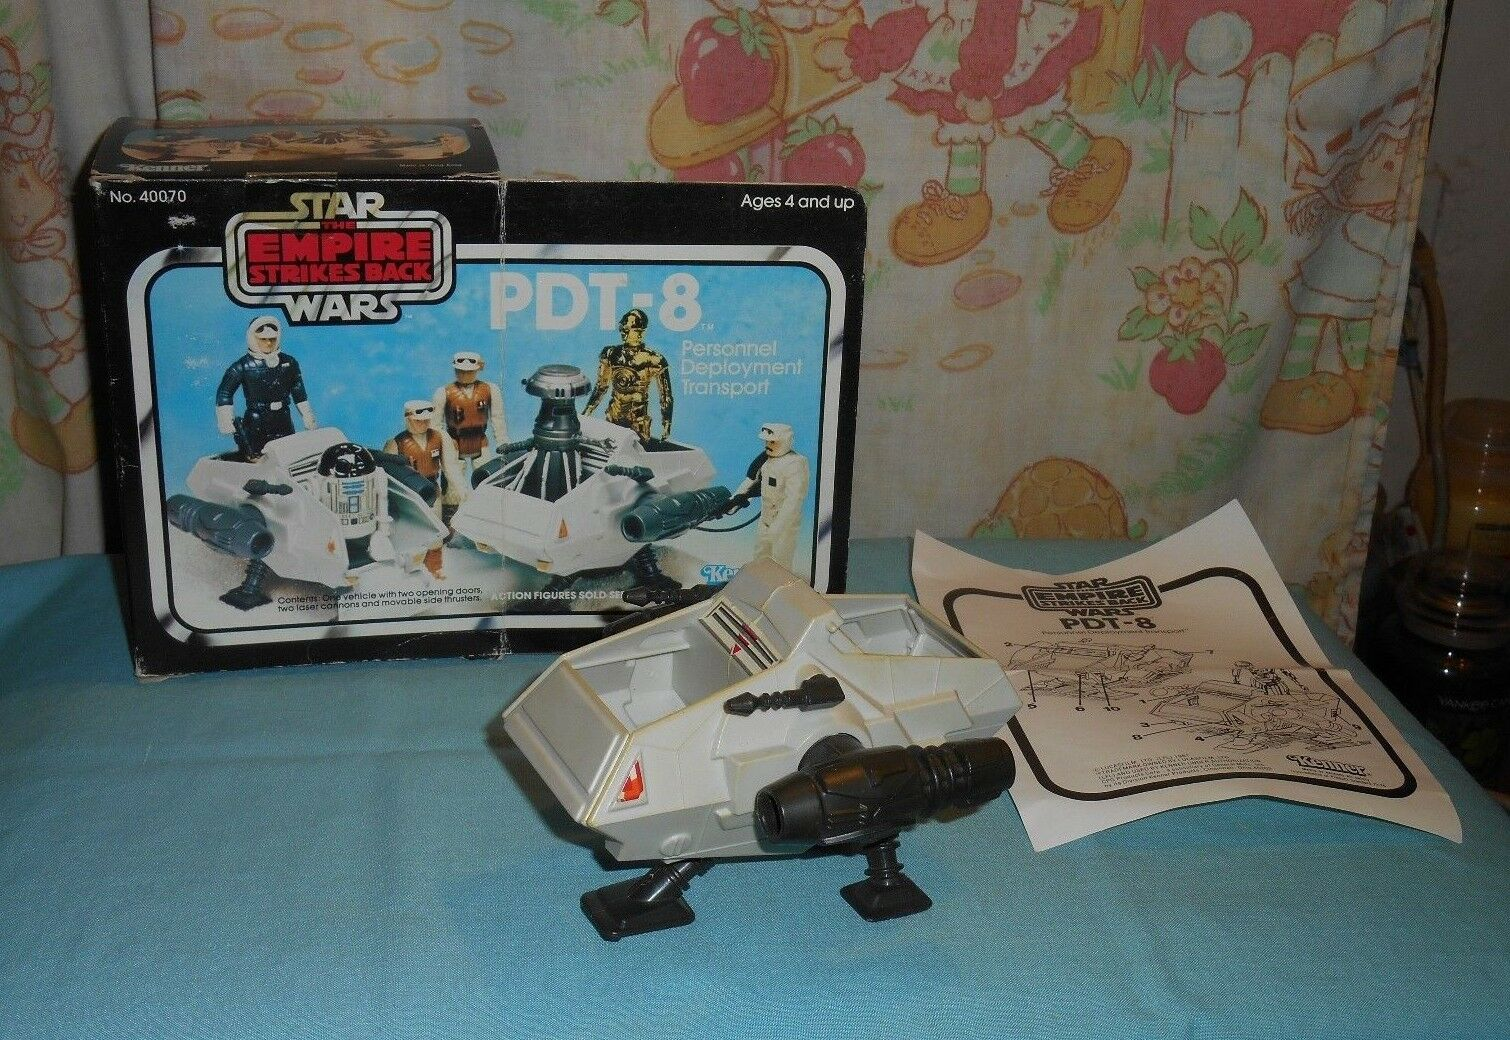 Vintage Star Wars ESB PDT-8 Personnel Deployment Transport mini-rig in box